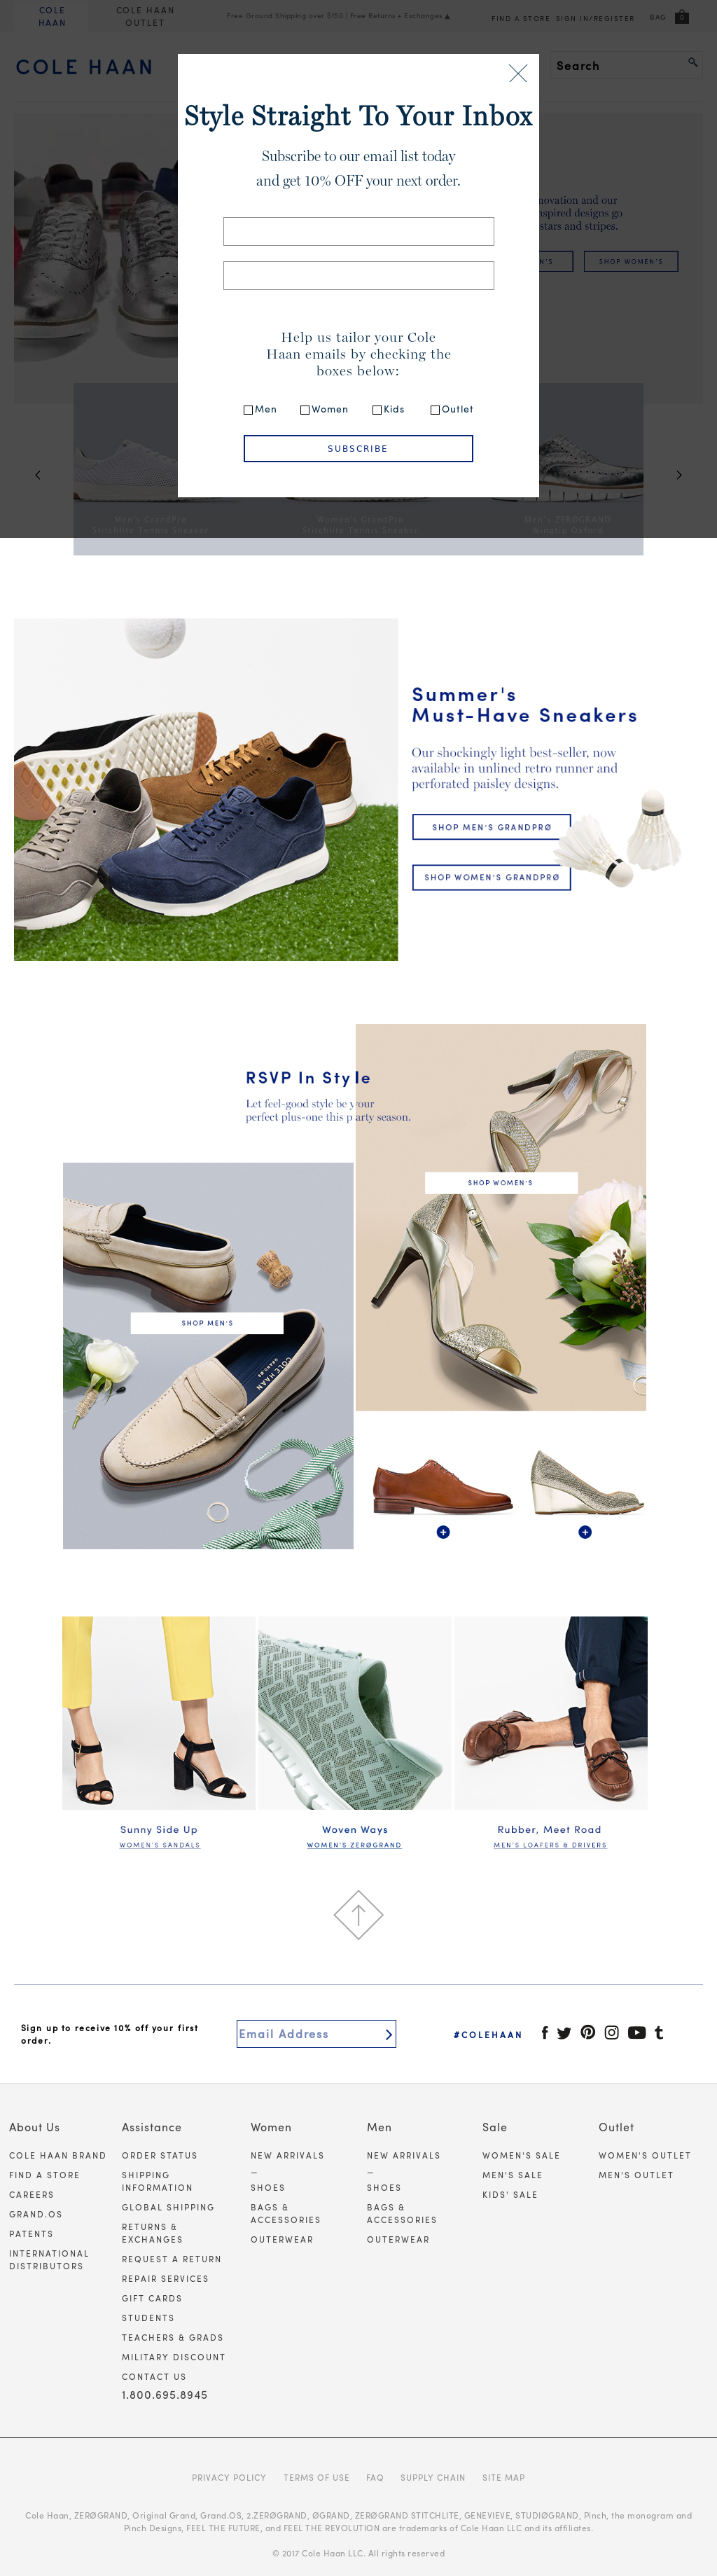 74bd1b0fe36 Cole Haan Competitors, Revenue and Employees - Owler Company Profile